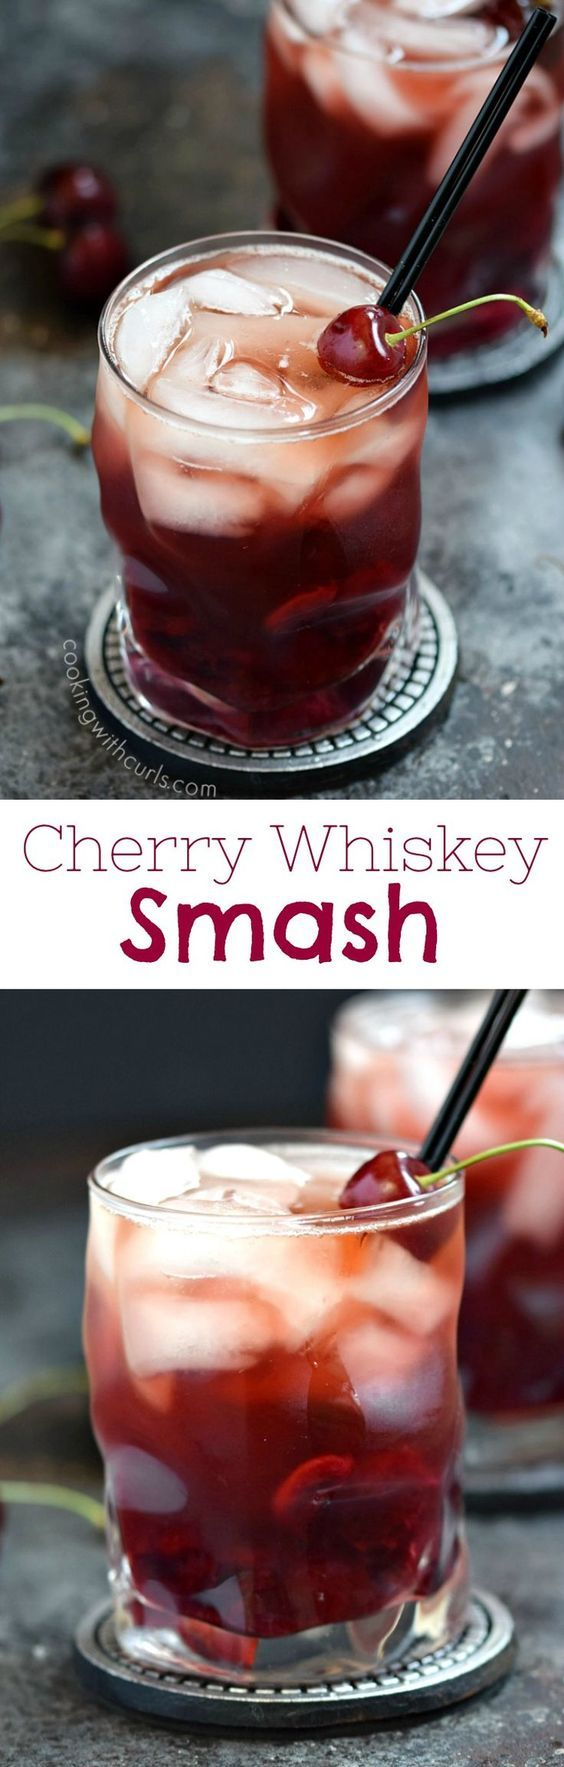 This Cherry Whiskey Smash is perfect for summer using fresh cherries, winter in front of a fireplace, and shared with someone special on Valentine's Day | cookingwithcurls.com #feastndevour